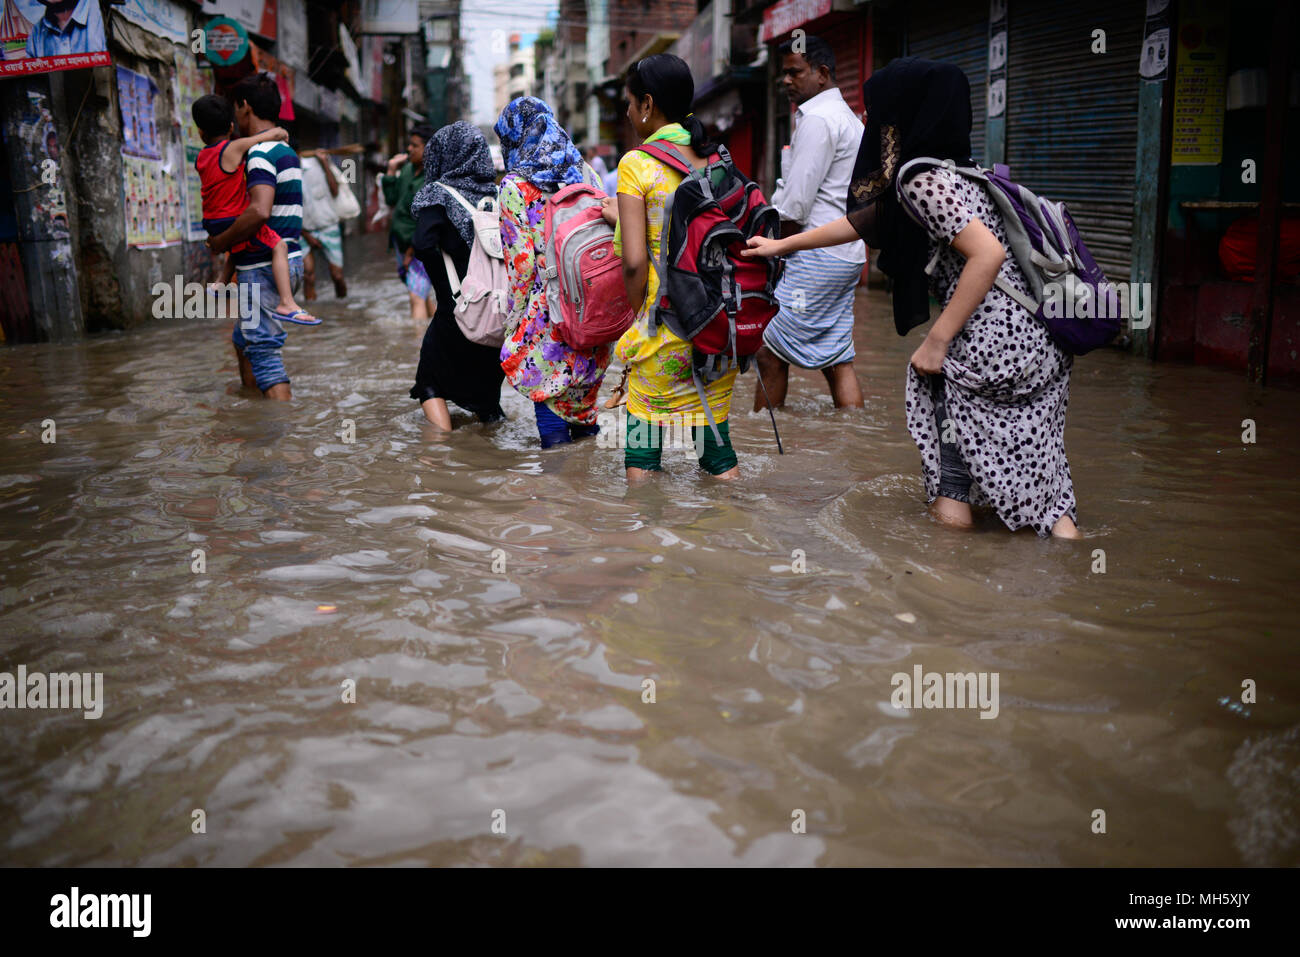 Dhaka, Bangladesh. April 30, 2018. Dhaka city dwellers ride rickshaw through the flooded road after the heavy rainfall in Dhaka, Bangladesh on April 30, 2018. Al least 14 people have killed during the lightning and thunderstorms, disrupting life in the capital city where heavy rain flooded many roads according to reports.  Credit: Rakib Hasan/Alamy Live News - Stock Image